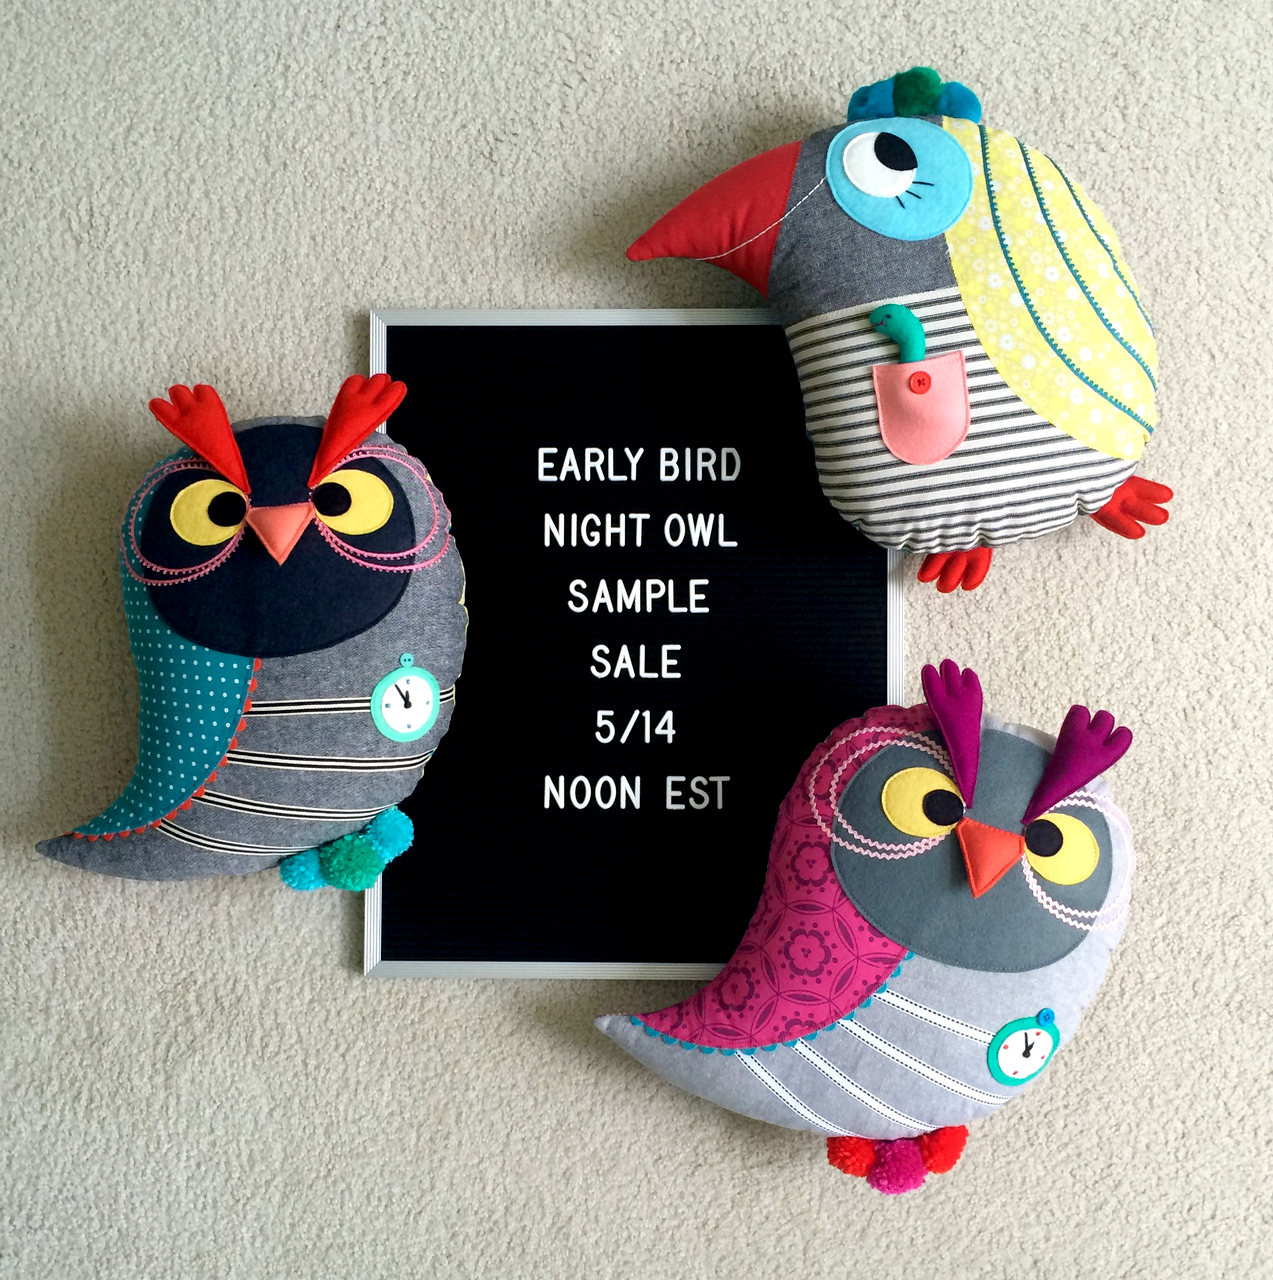 Mmmcrafts Early Bird Night Owl Sample Sale